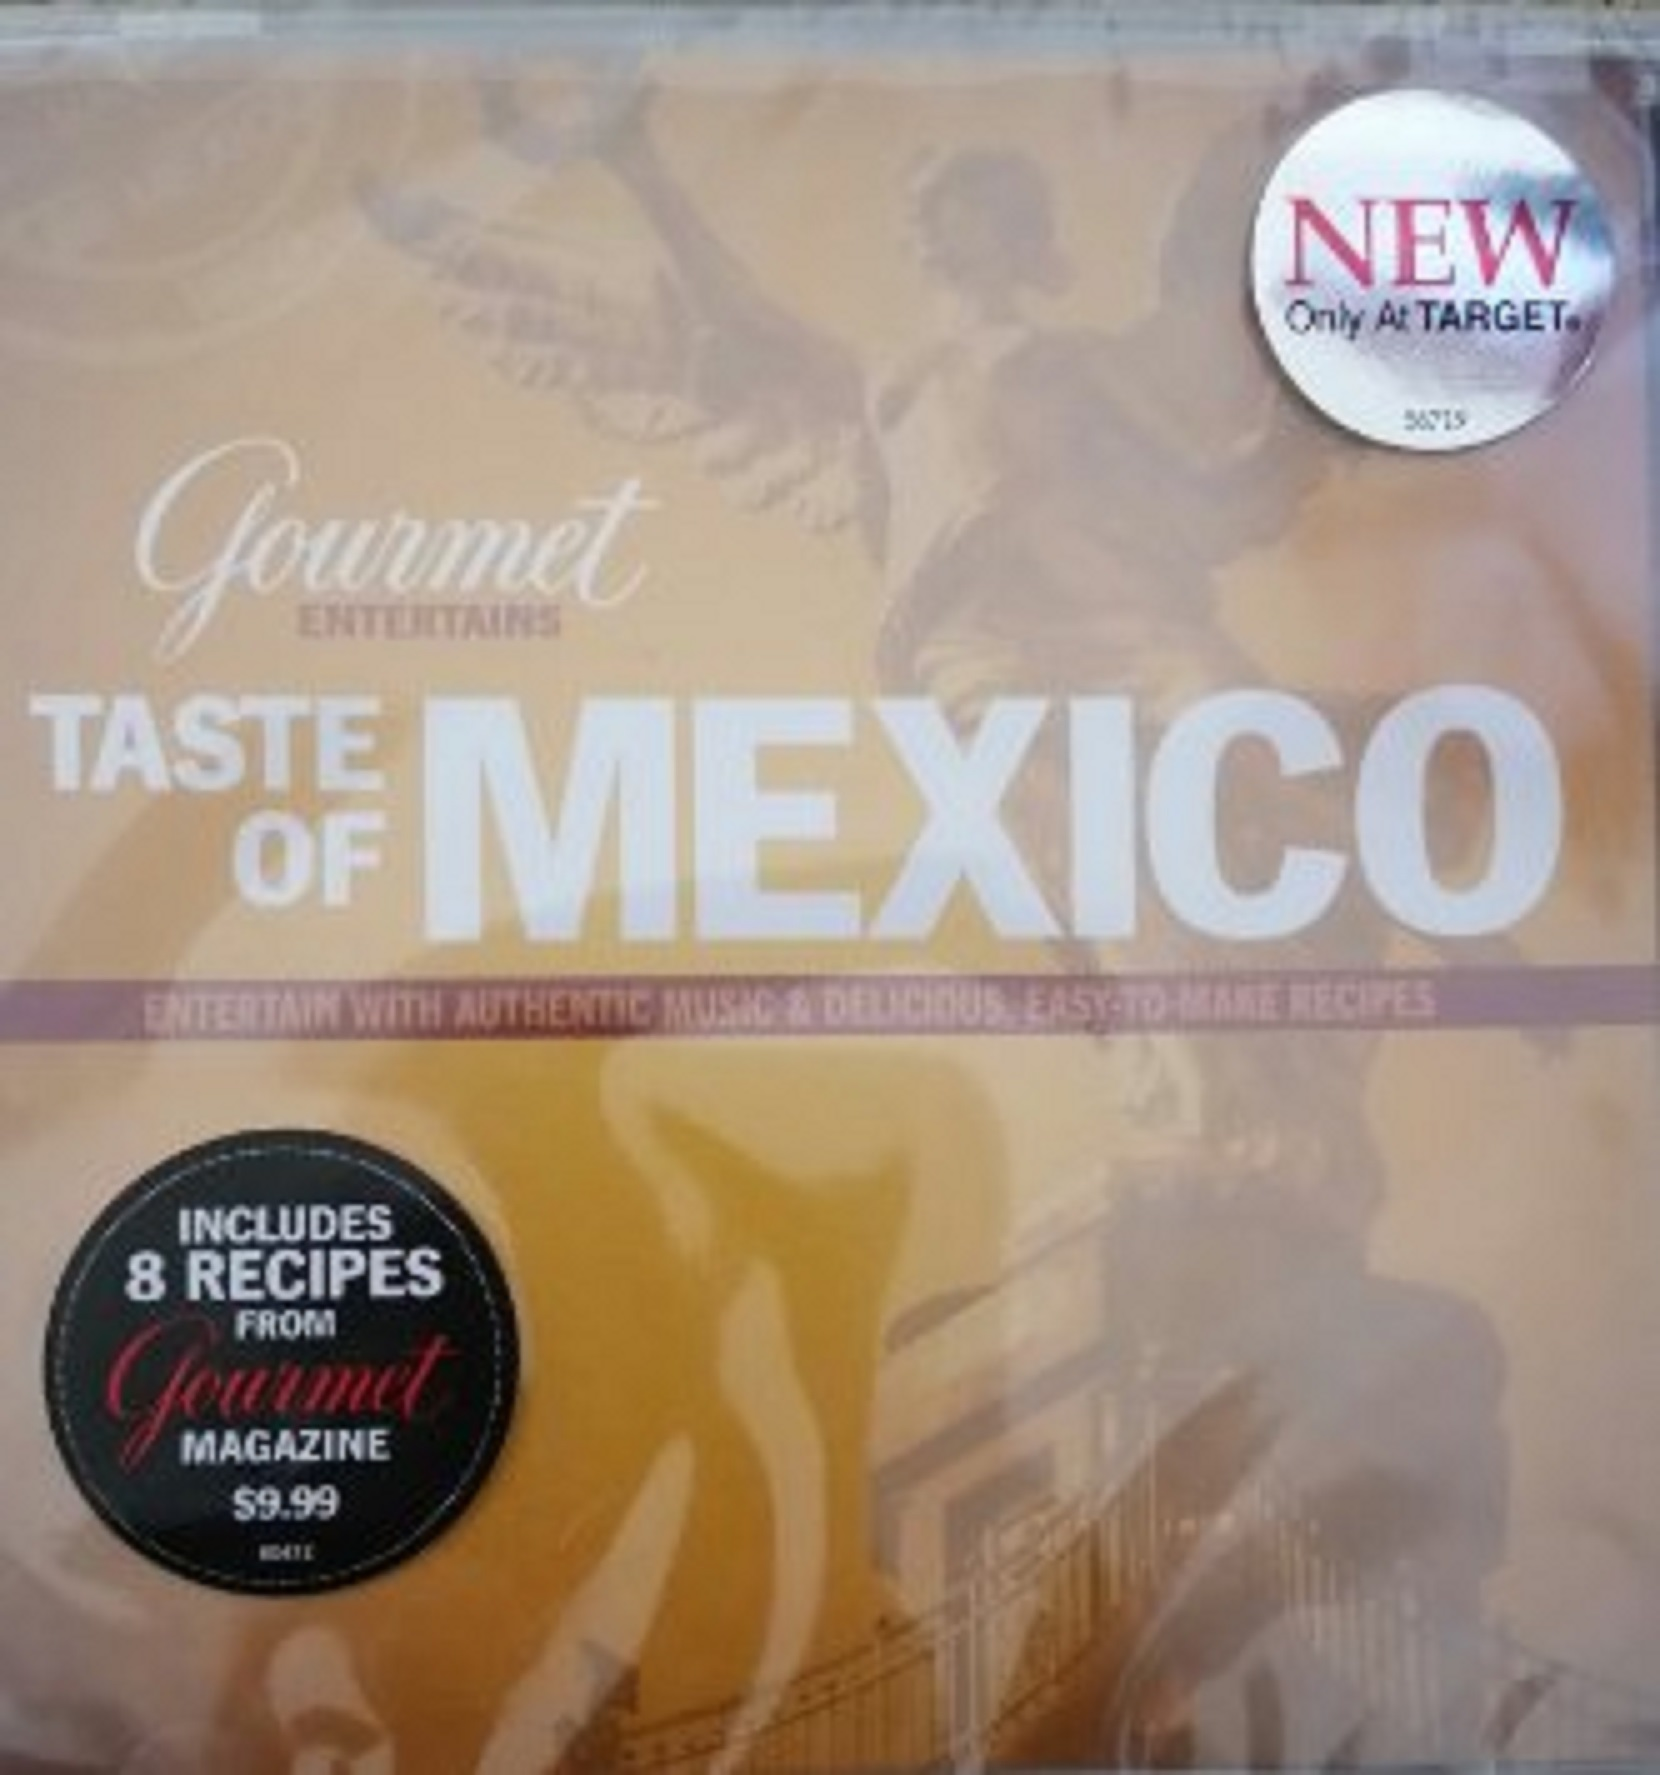 Gourmet Entertains: Taste Of Mexico On Audio CD Album